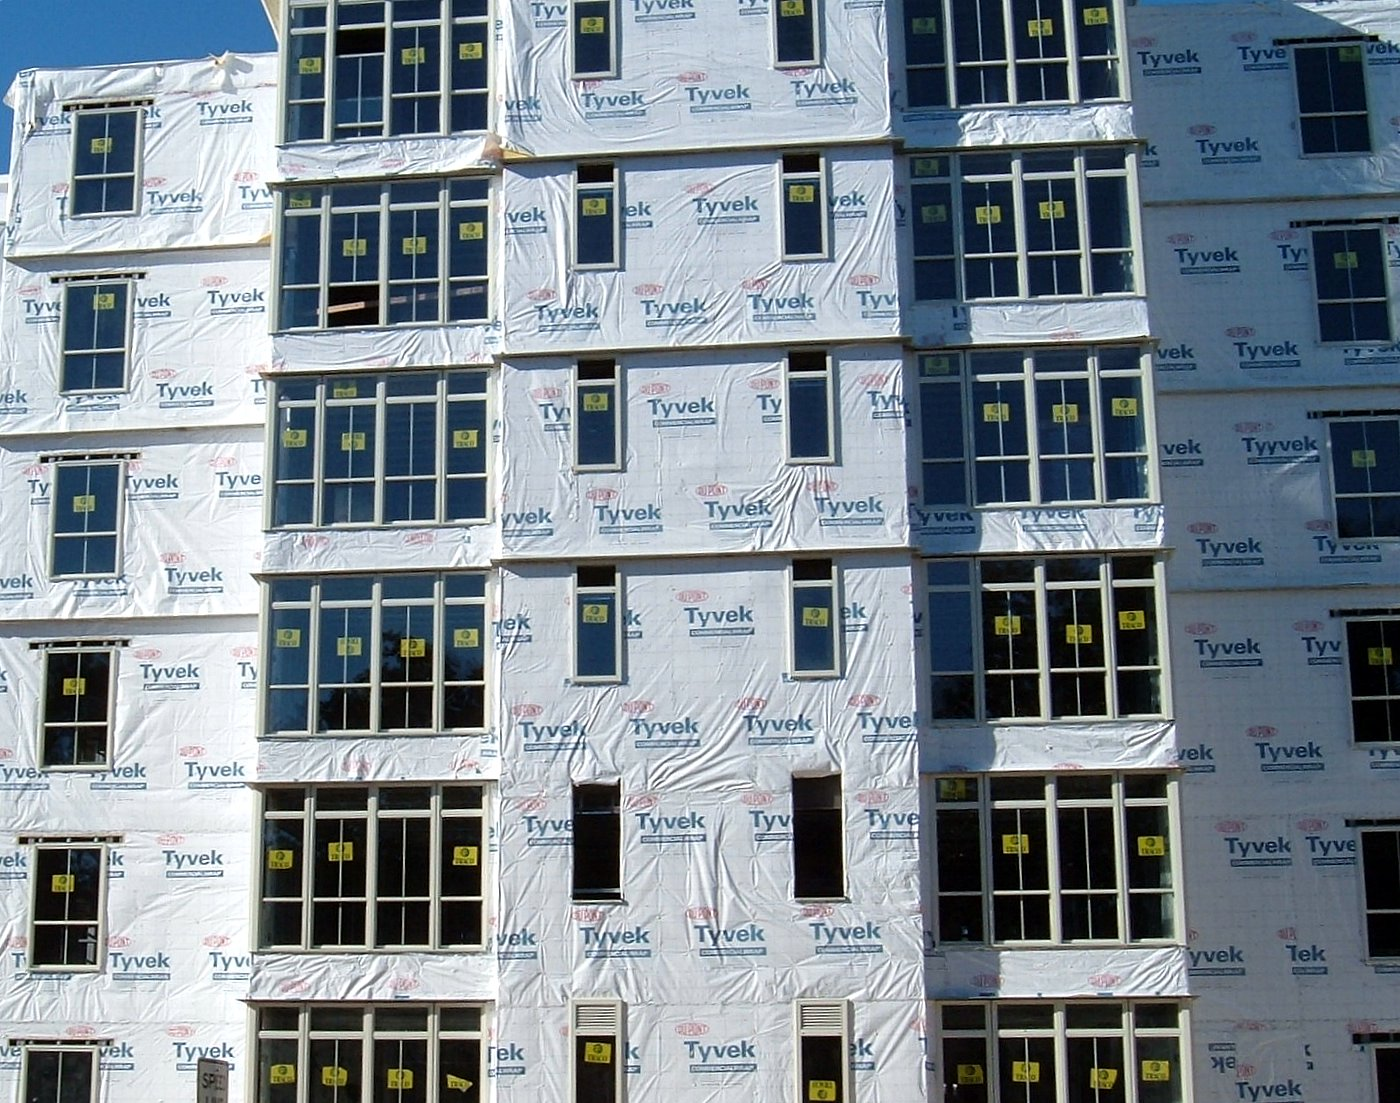 Tyvek_house_wrap.jpg